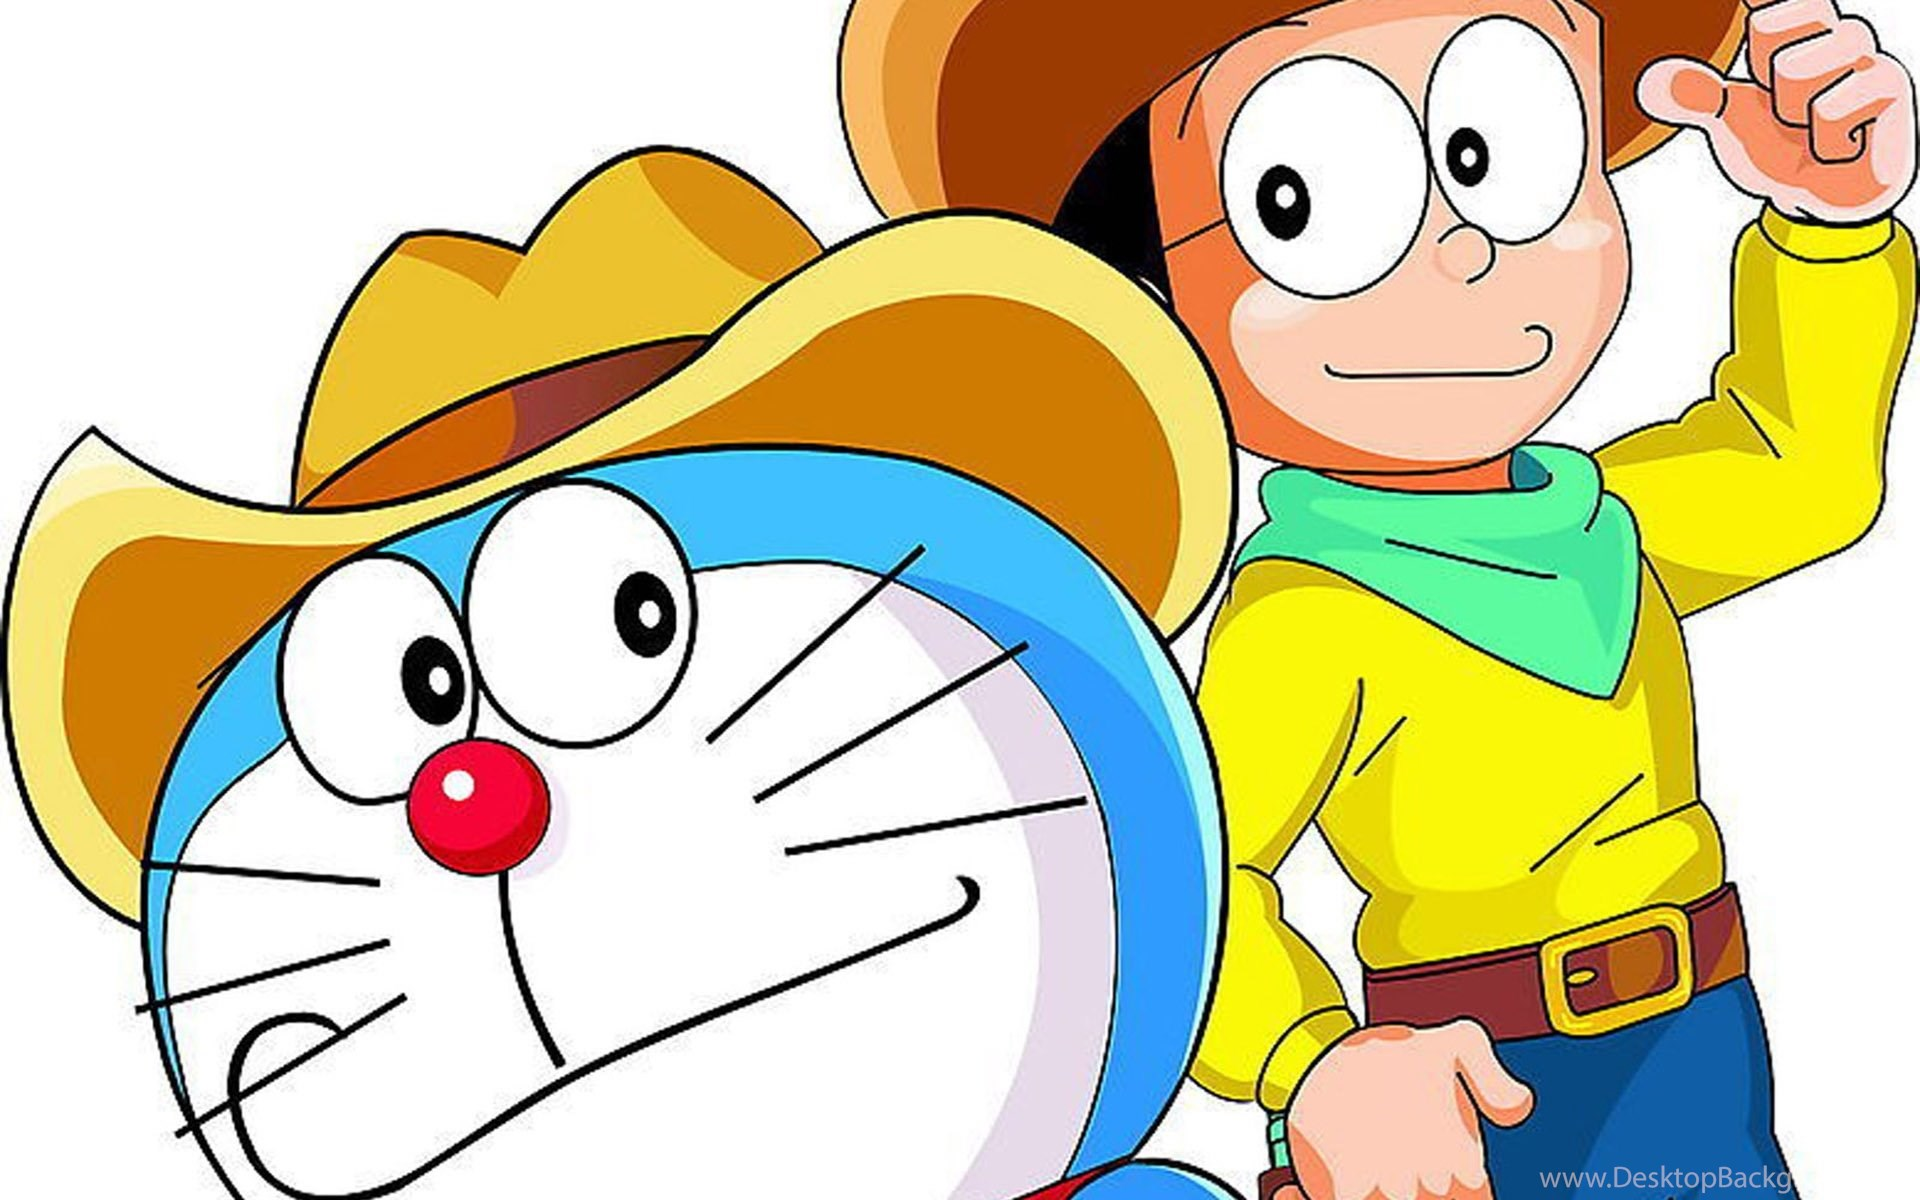 Doraemon Anime Cartoon Wallpapers Hd Desktop Background